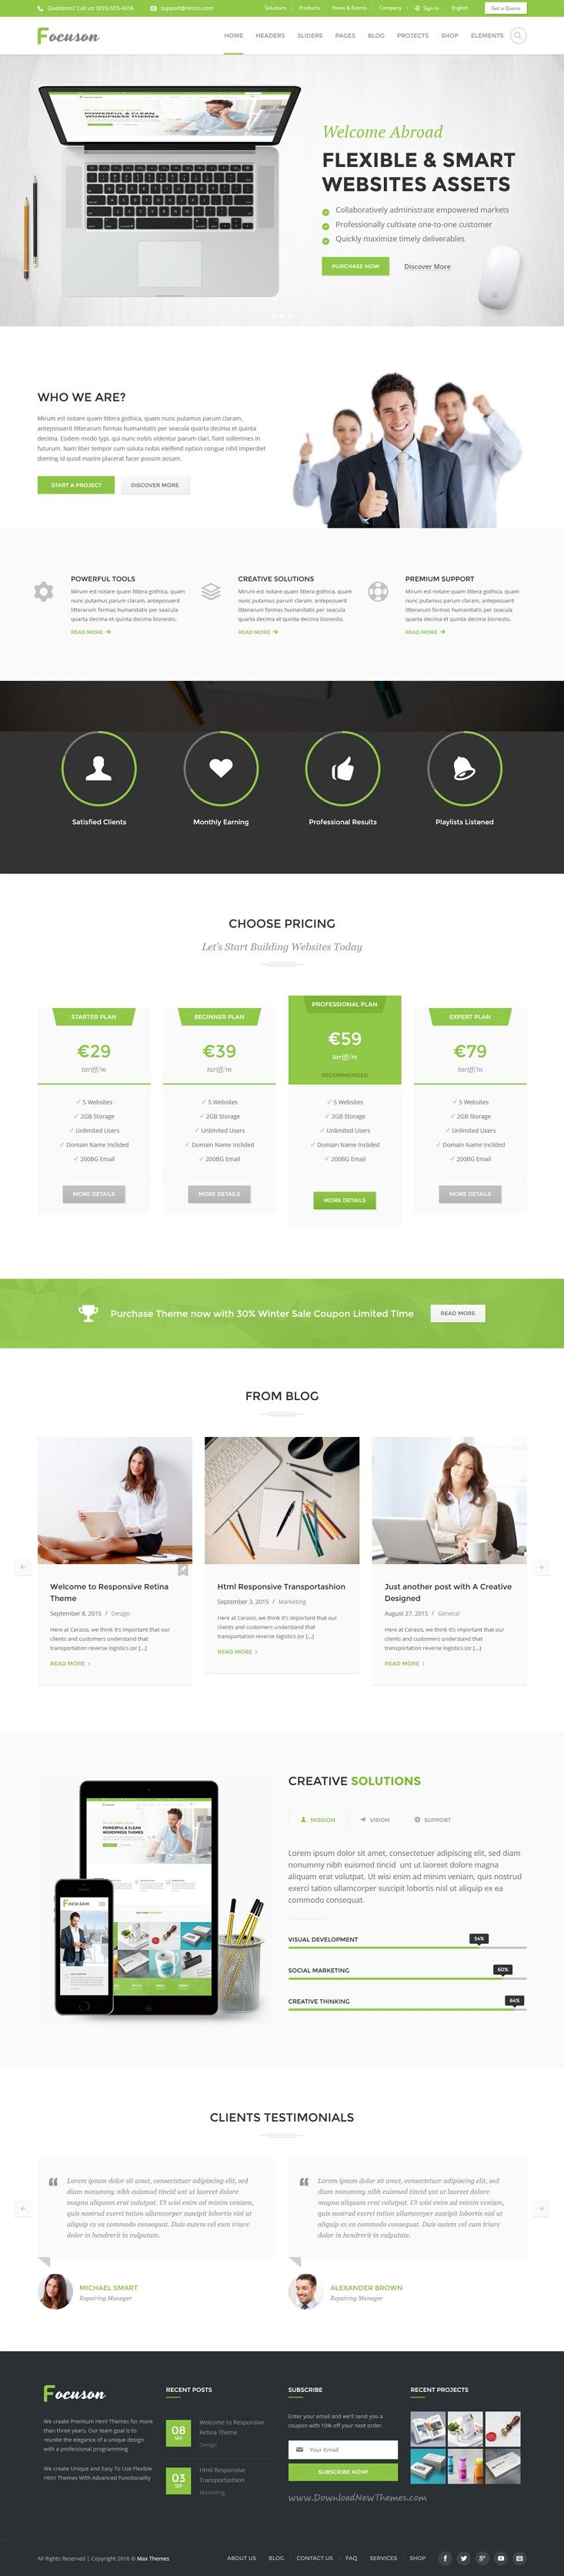 Focuson is a beautiufully design responsive #HTML #template for multipurpose #business website with 10 stunning homepage layouts download now➯ https://themeforest.net/item/focuson-business-html-theme/17184687?ref=Datasata